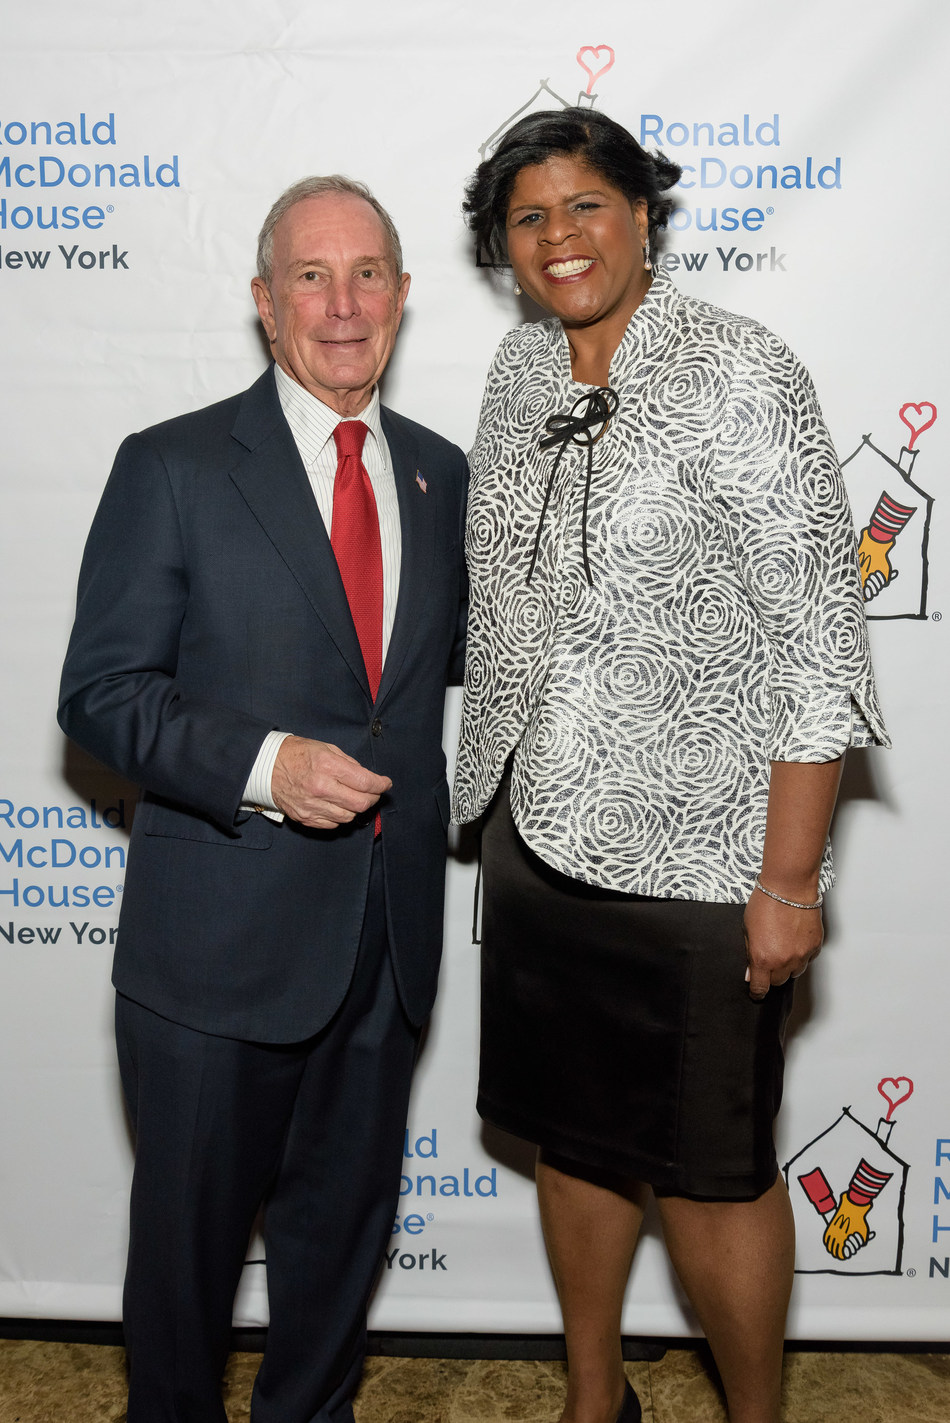 Three-term Mayor of New York City and Founder of Bloomberg LP and Bloomberg Philanthropies, Michael R. Bloomberg with President & CEO of Ronald McDonald House New York, Dr. Ruth C. Browne at the 25th annual Ronald McDonald House of NY Gala.